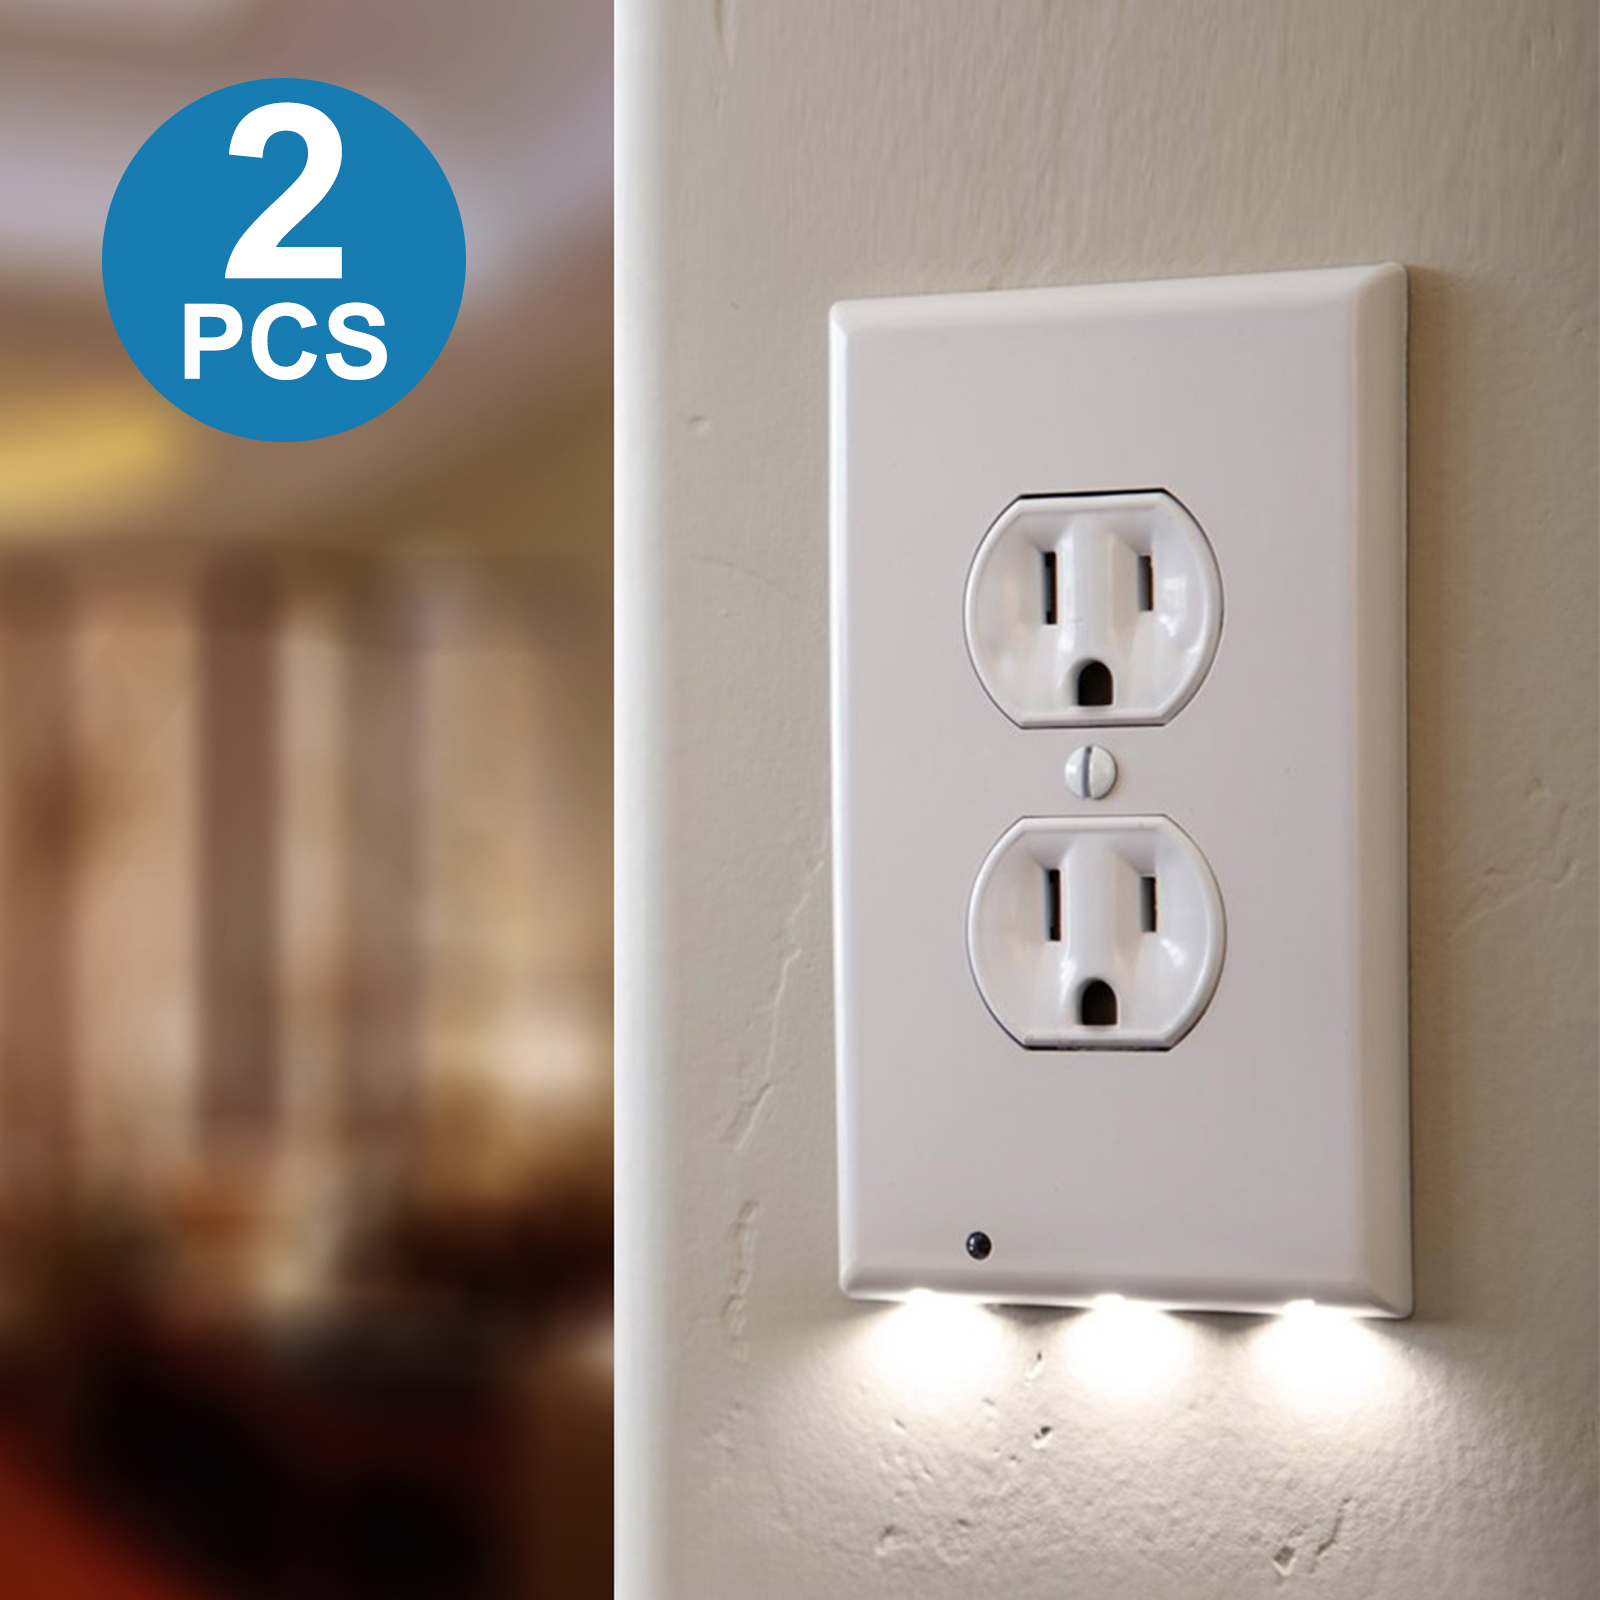 TSV Plug Cover LED Night Angel Wall Outlet Face Hallway Bedroom Bathroom Safty Light & Night Lights - Walmart.com azcodes.com